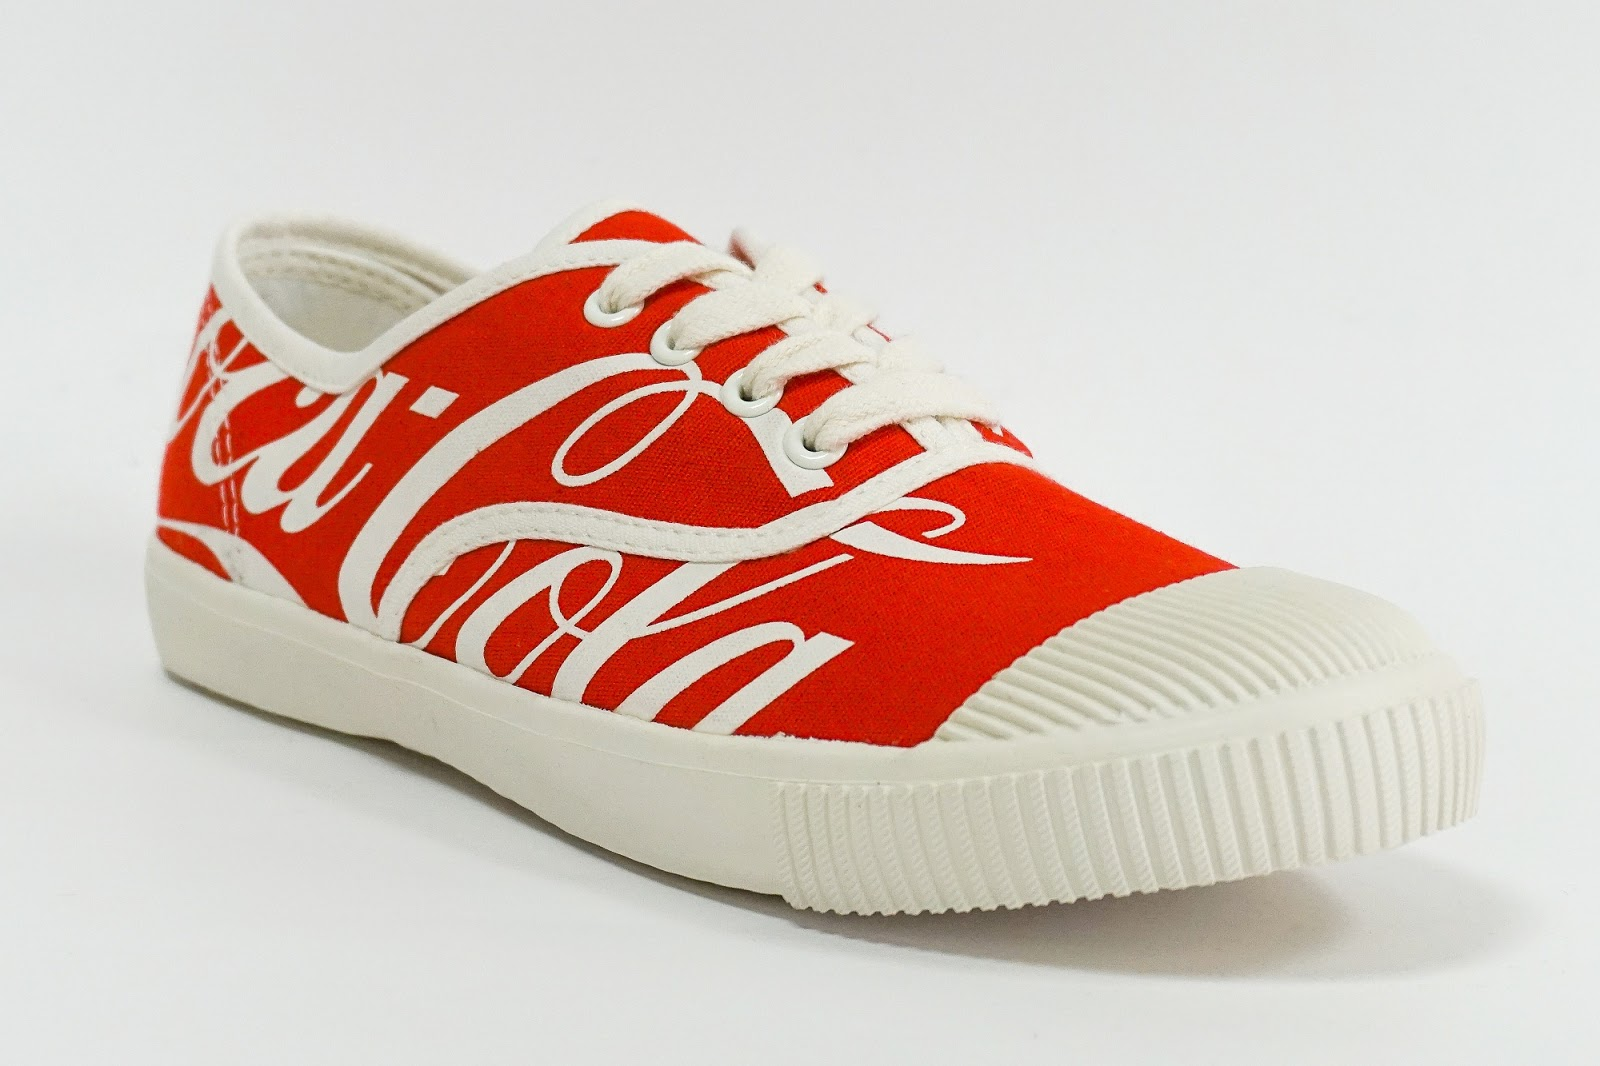 17edc5ddc7 Bata Heritage and Coca-Cola Launch Iconic Capsule for Spring 2019 ...